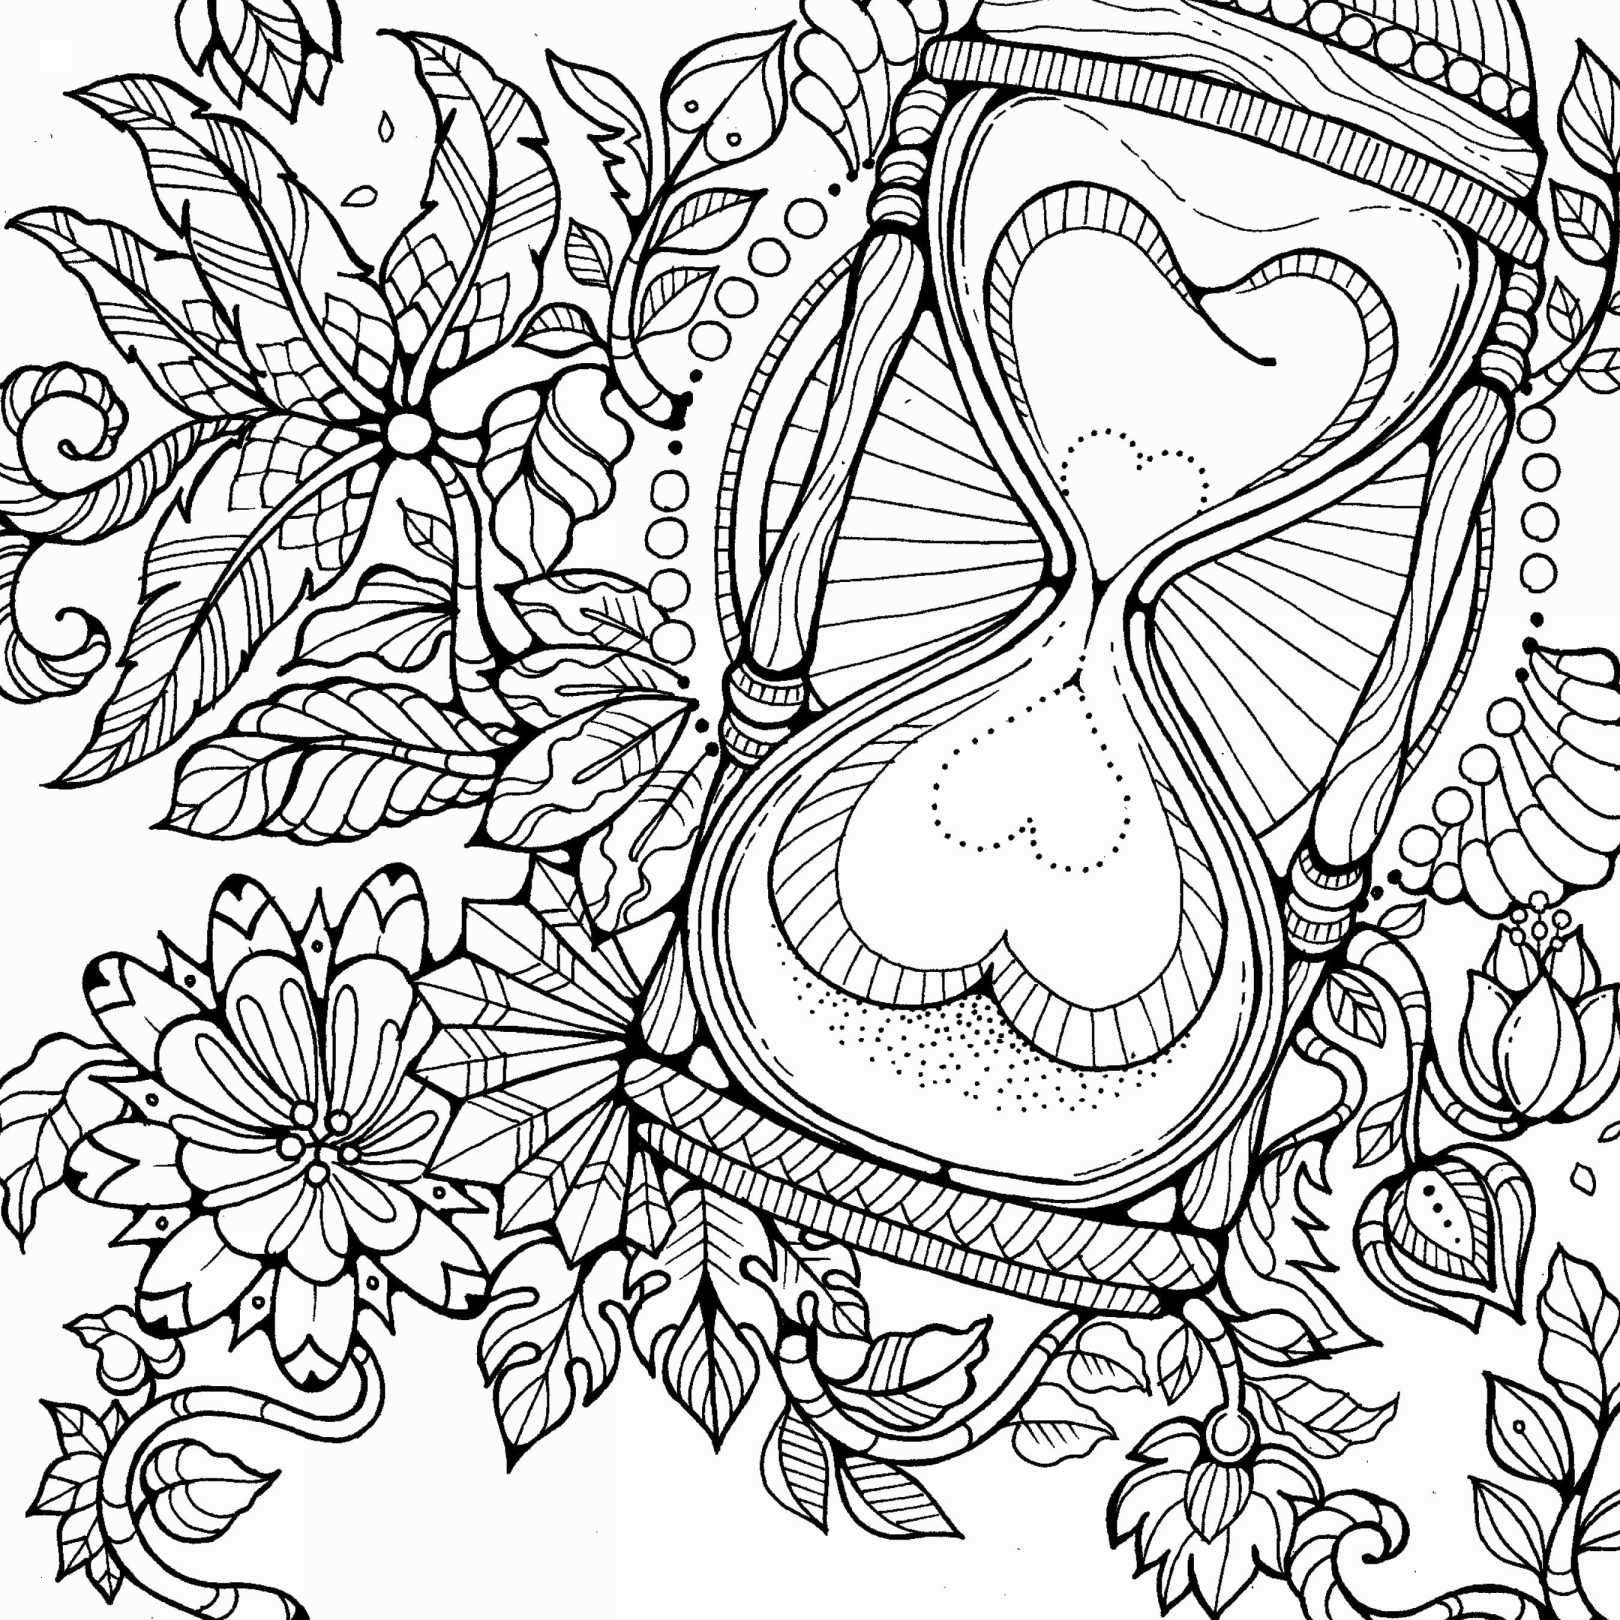 tanzania coloring pages Collection-Christmas Tree Star Coloring Page Star Coloring Page Brilliant 14-i